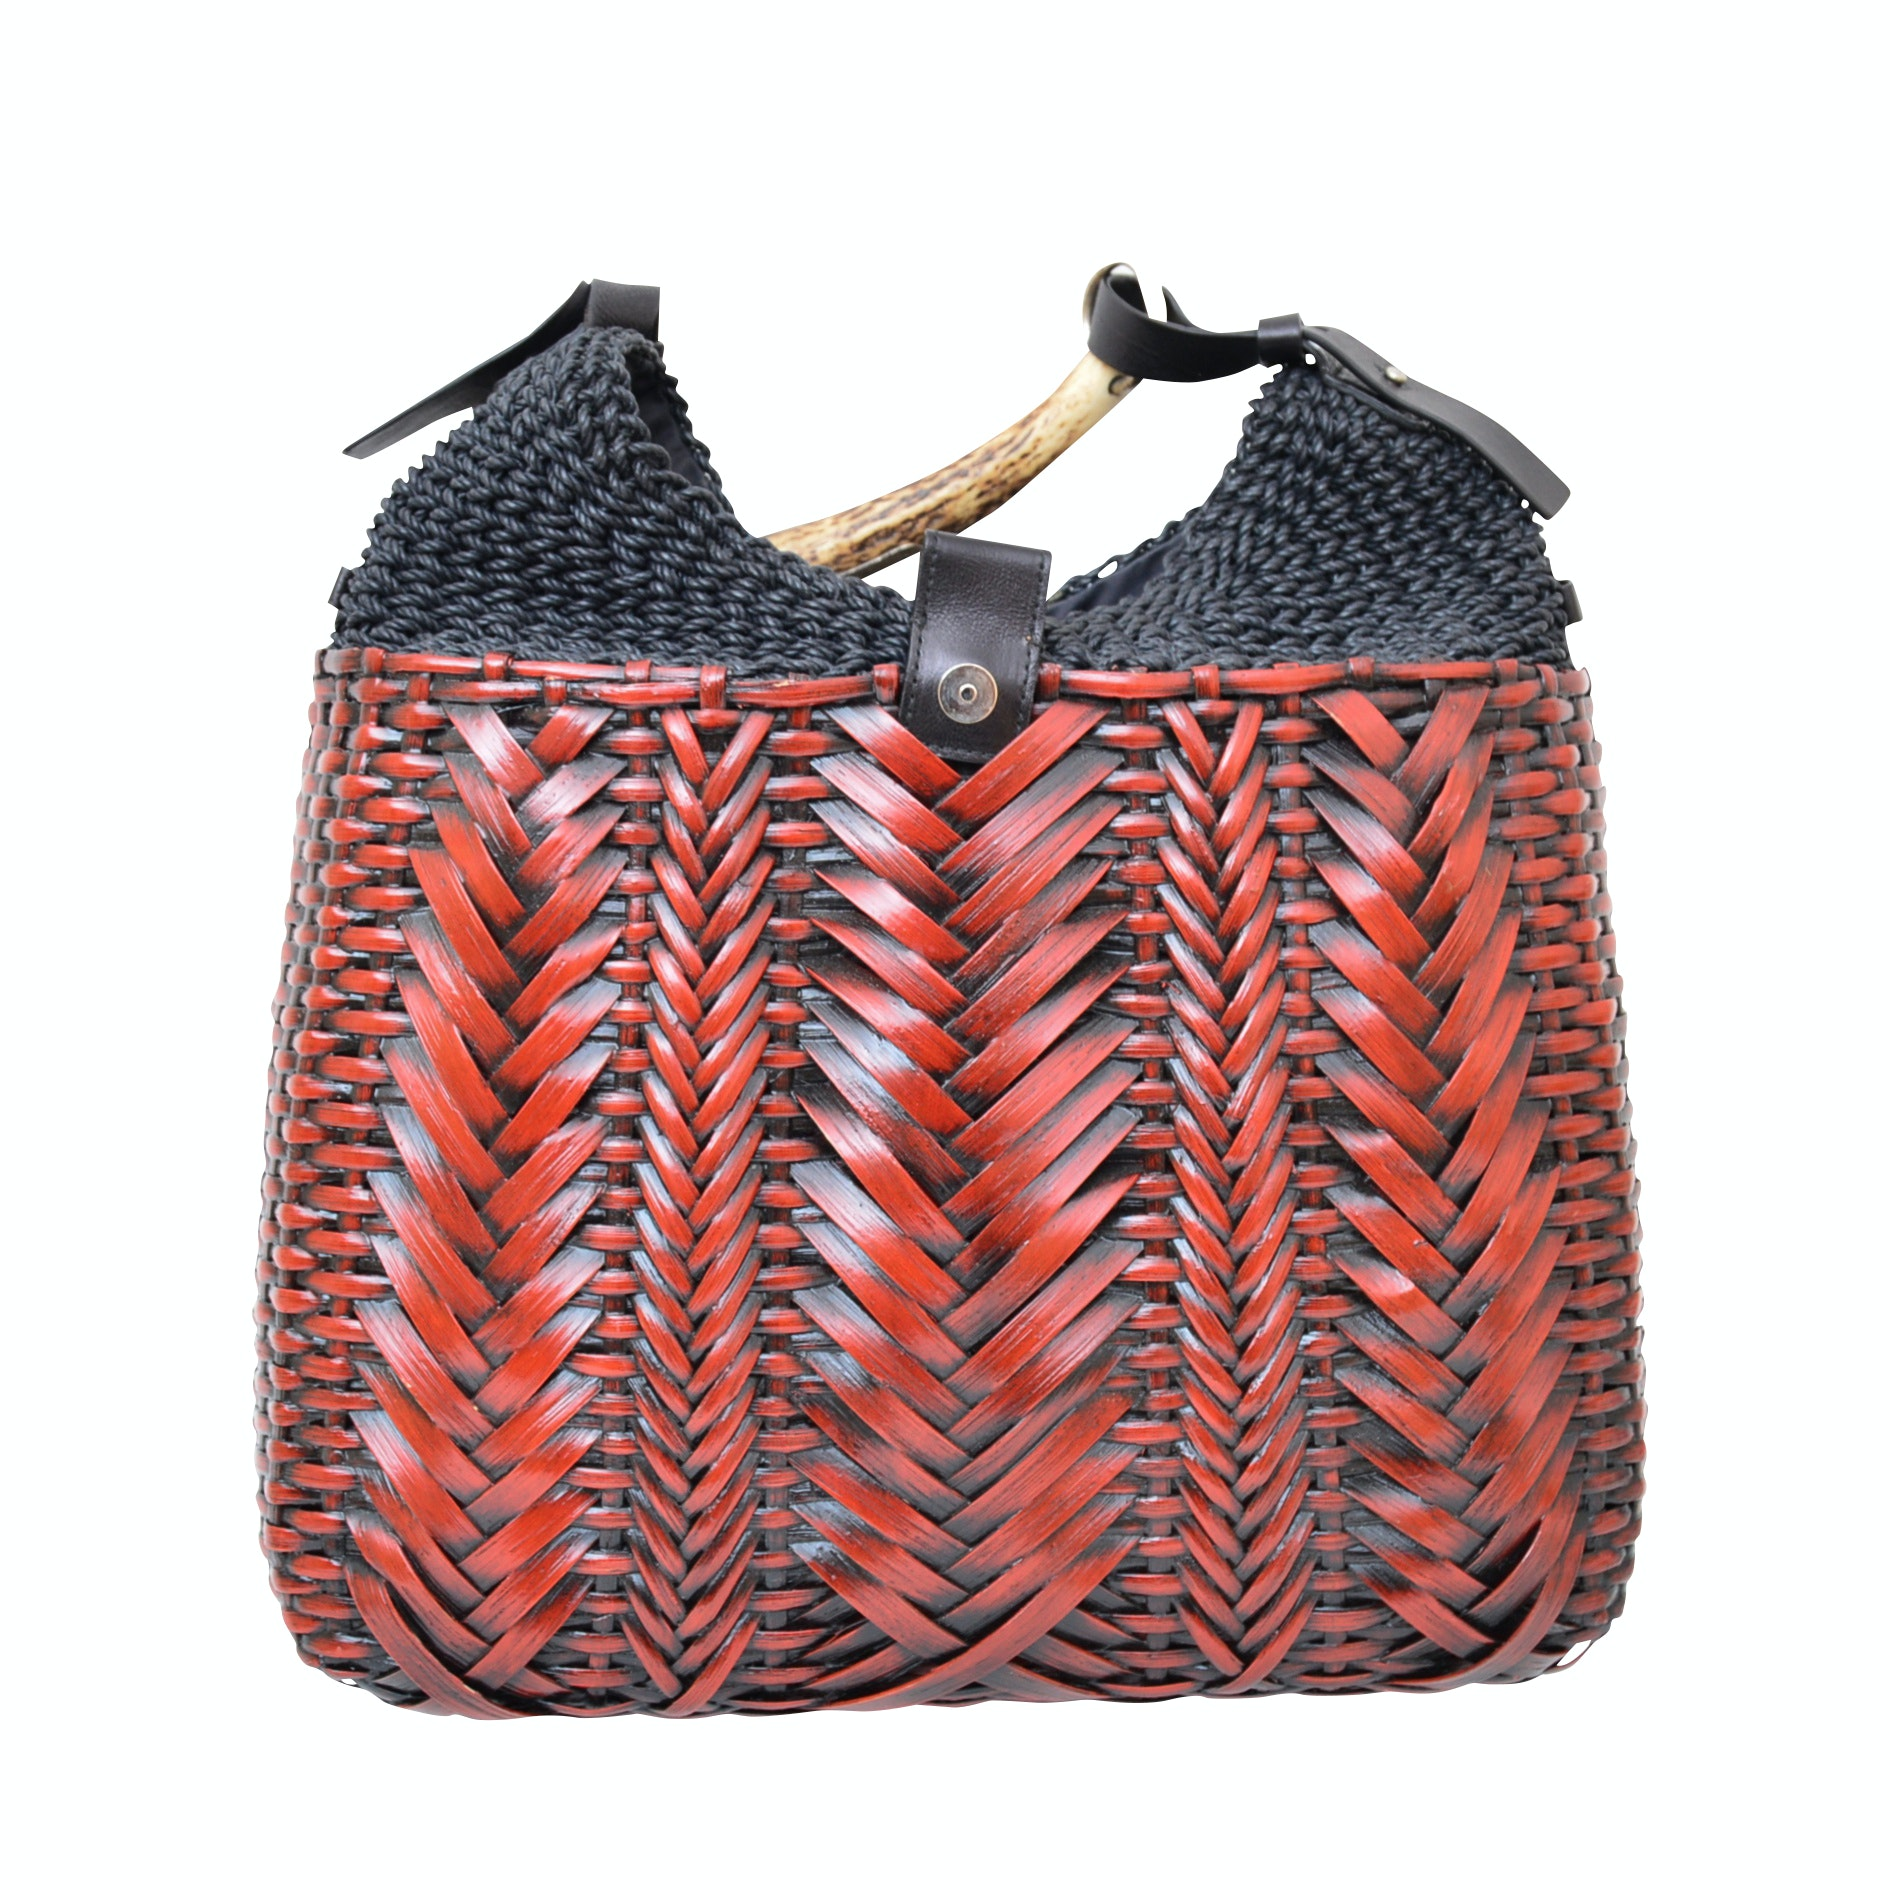 Yves Saint Laurent Woven Rattan and Fabric Handbag with Horn Handle